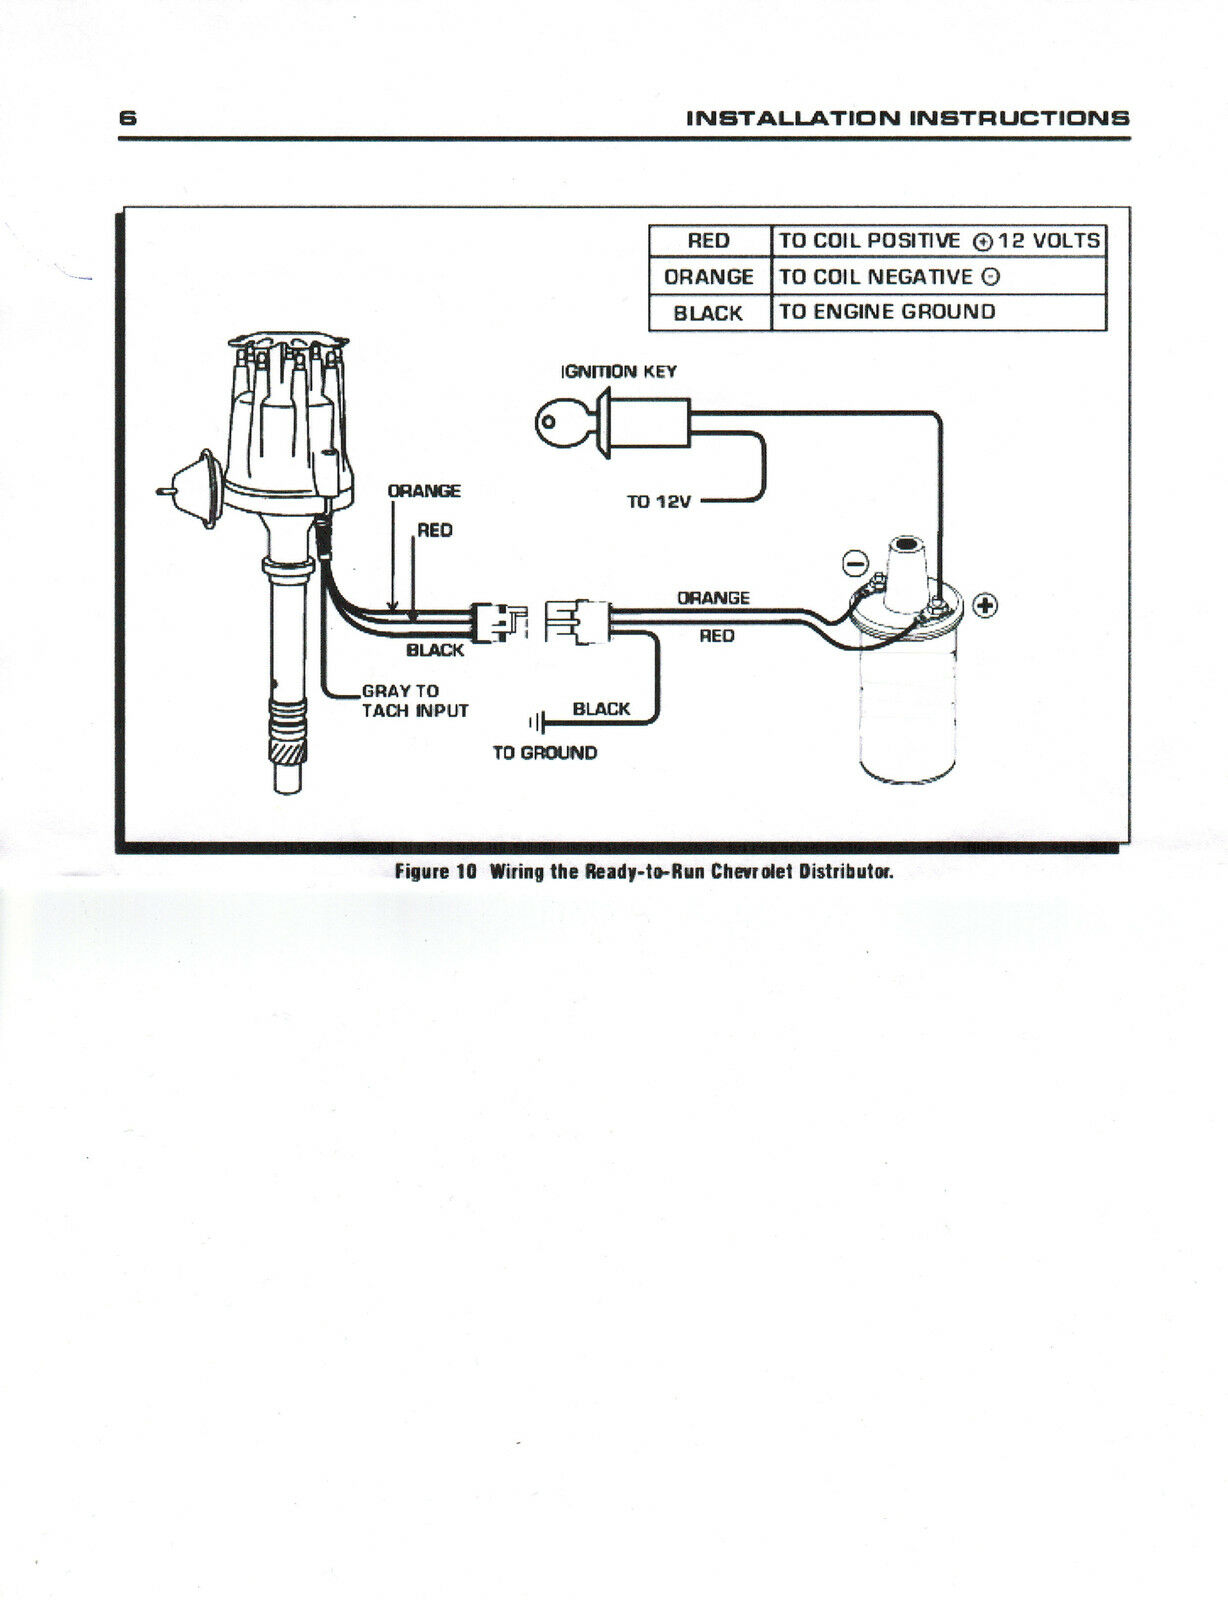 Ford 292 Distributor Wiring Library Electronic Ignition Diagram 1983 Top Street Performance Jm7742bl Pro Series Ready To Run Ebay